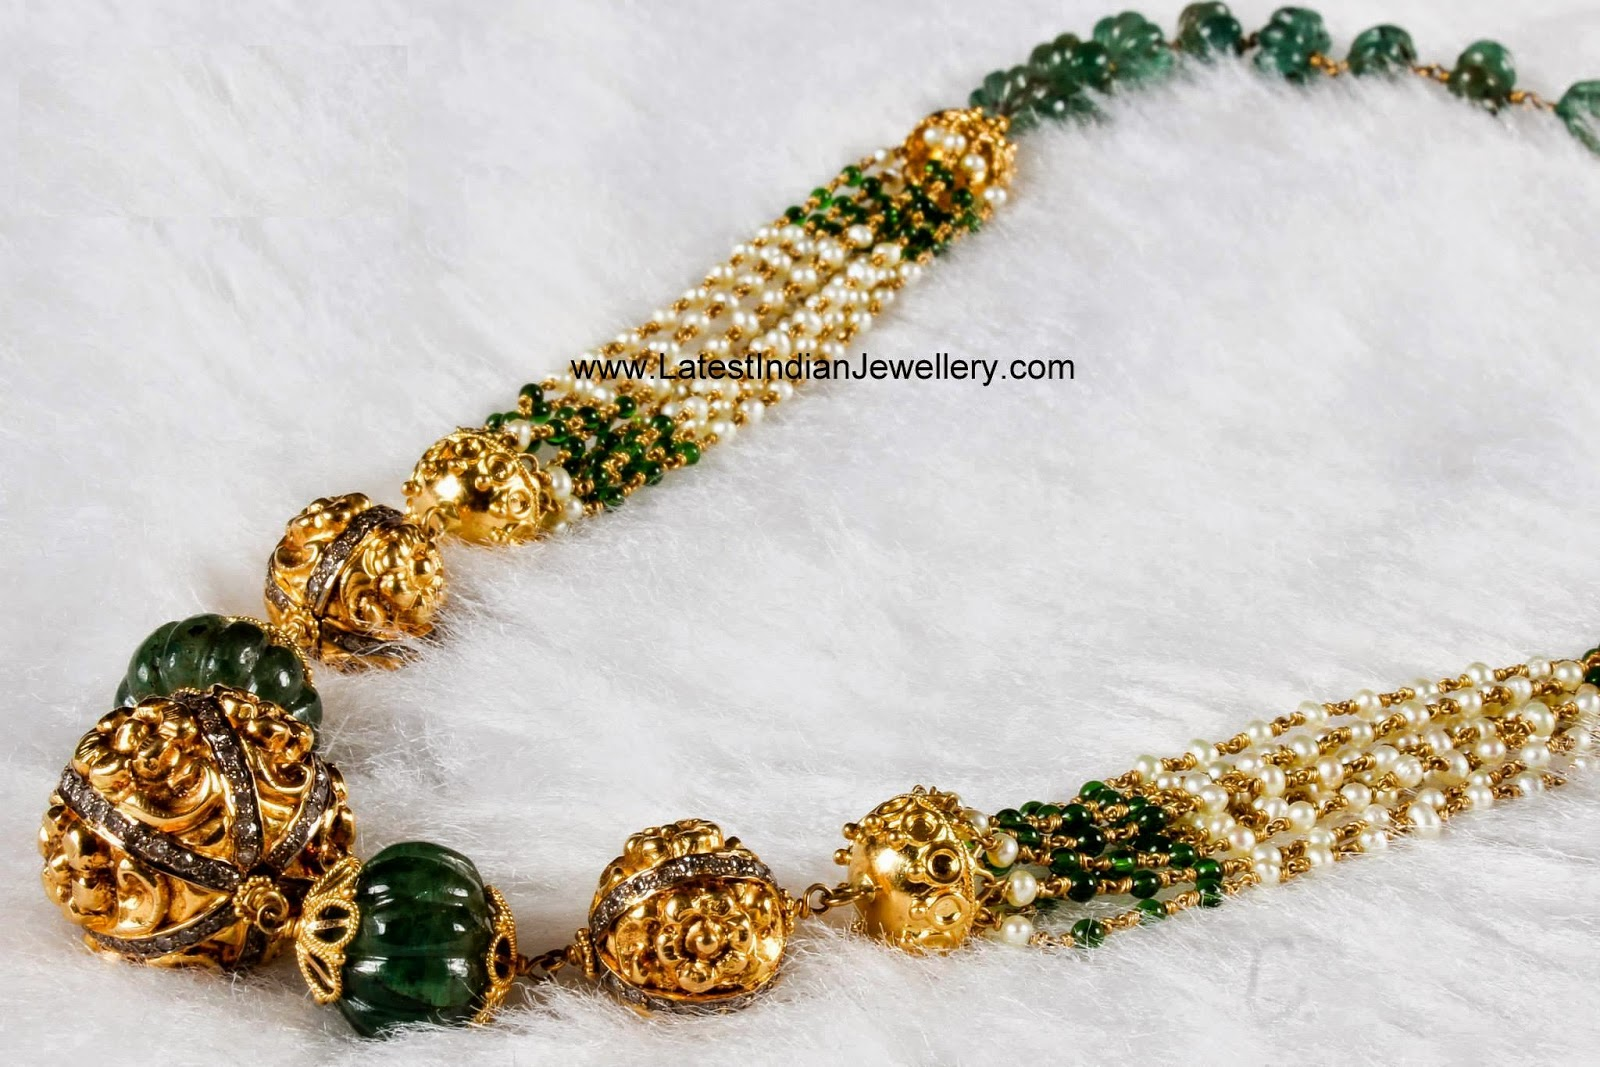 nakshi balls emerald beads necklace